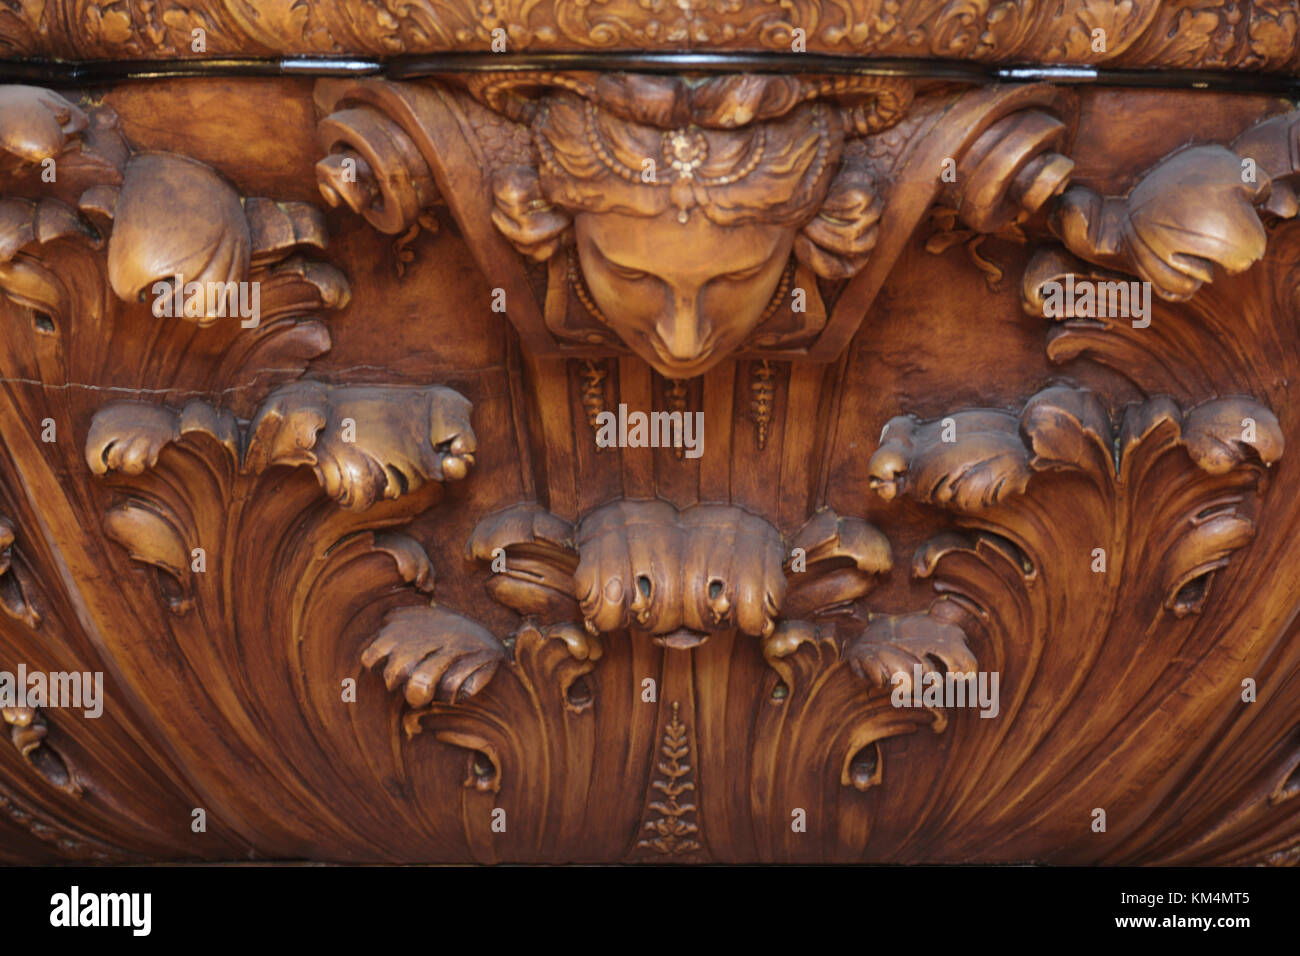 Detail of wood carving below organ. De Rode Hoed Cultural Centre, Amsterdam, Netherlands. Architect: Unknown, 1630. - Stock Image